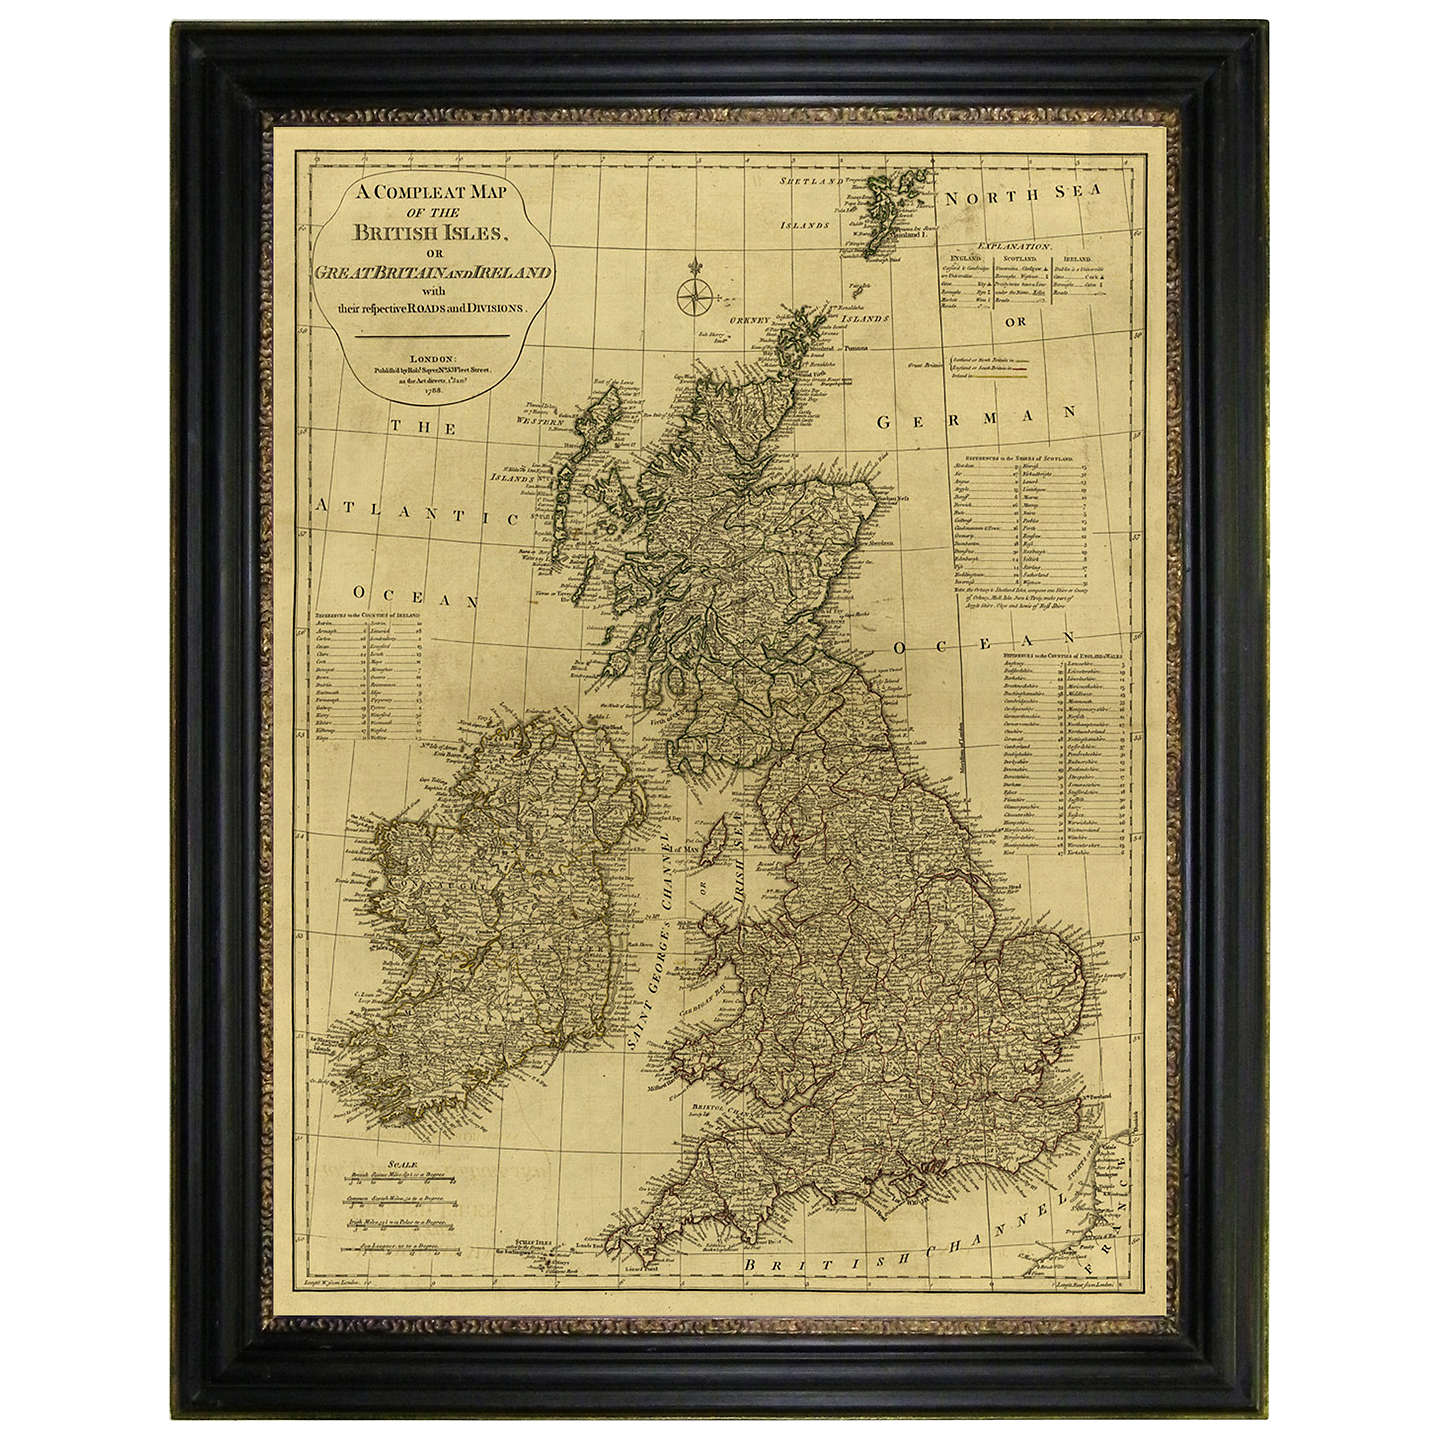 Brookpace, Vintage Maps Collection